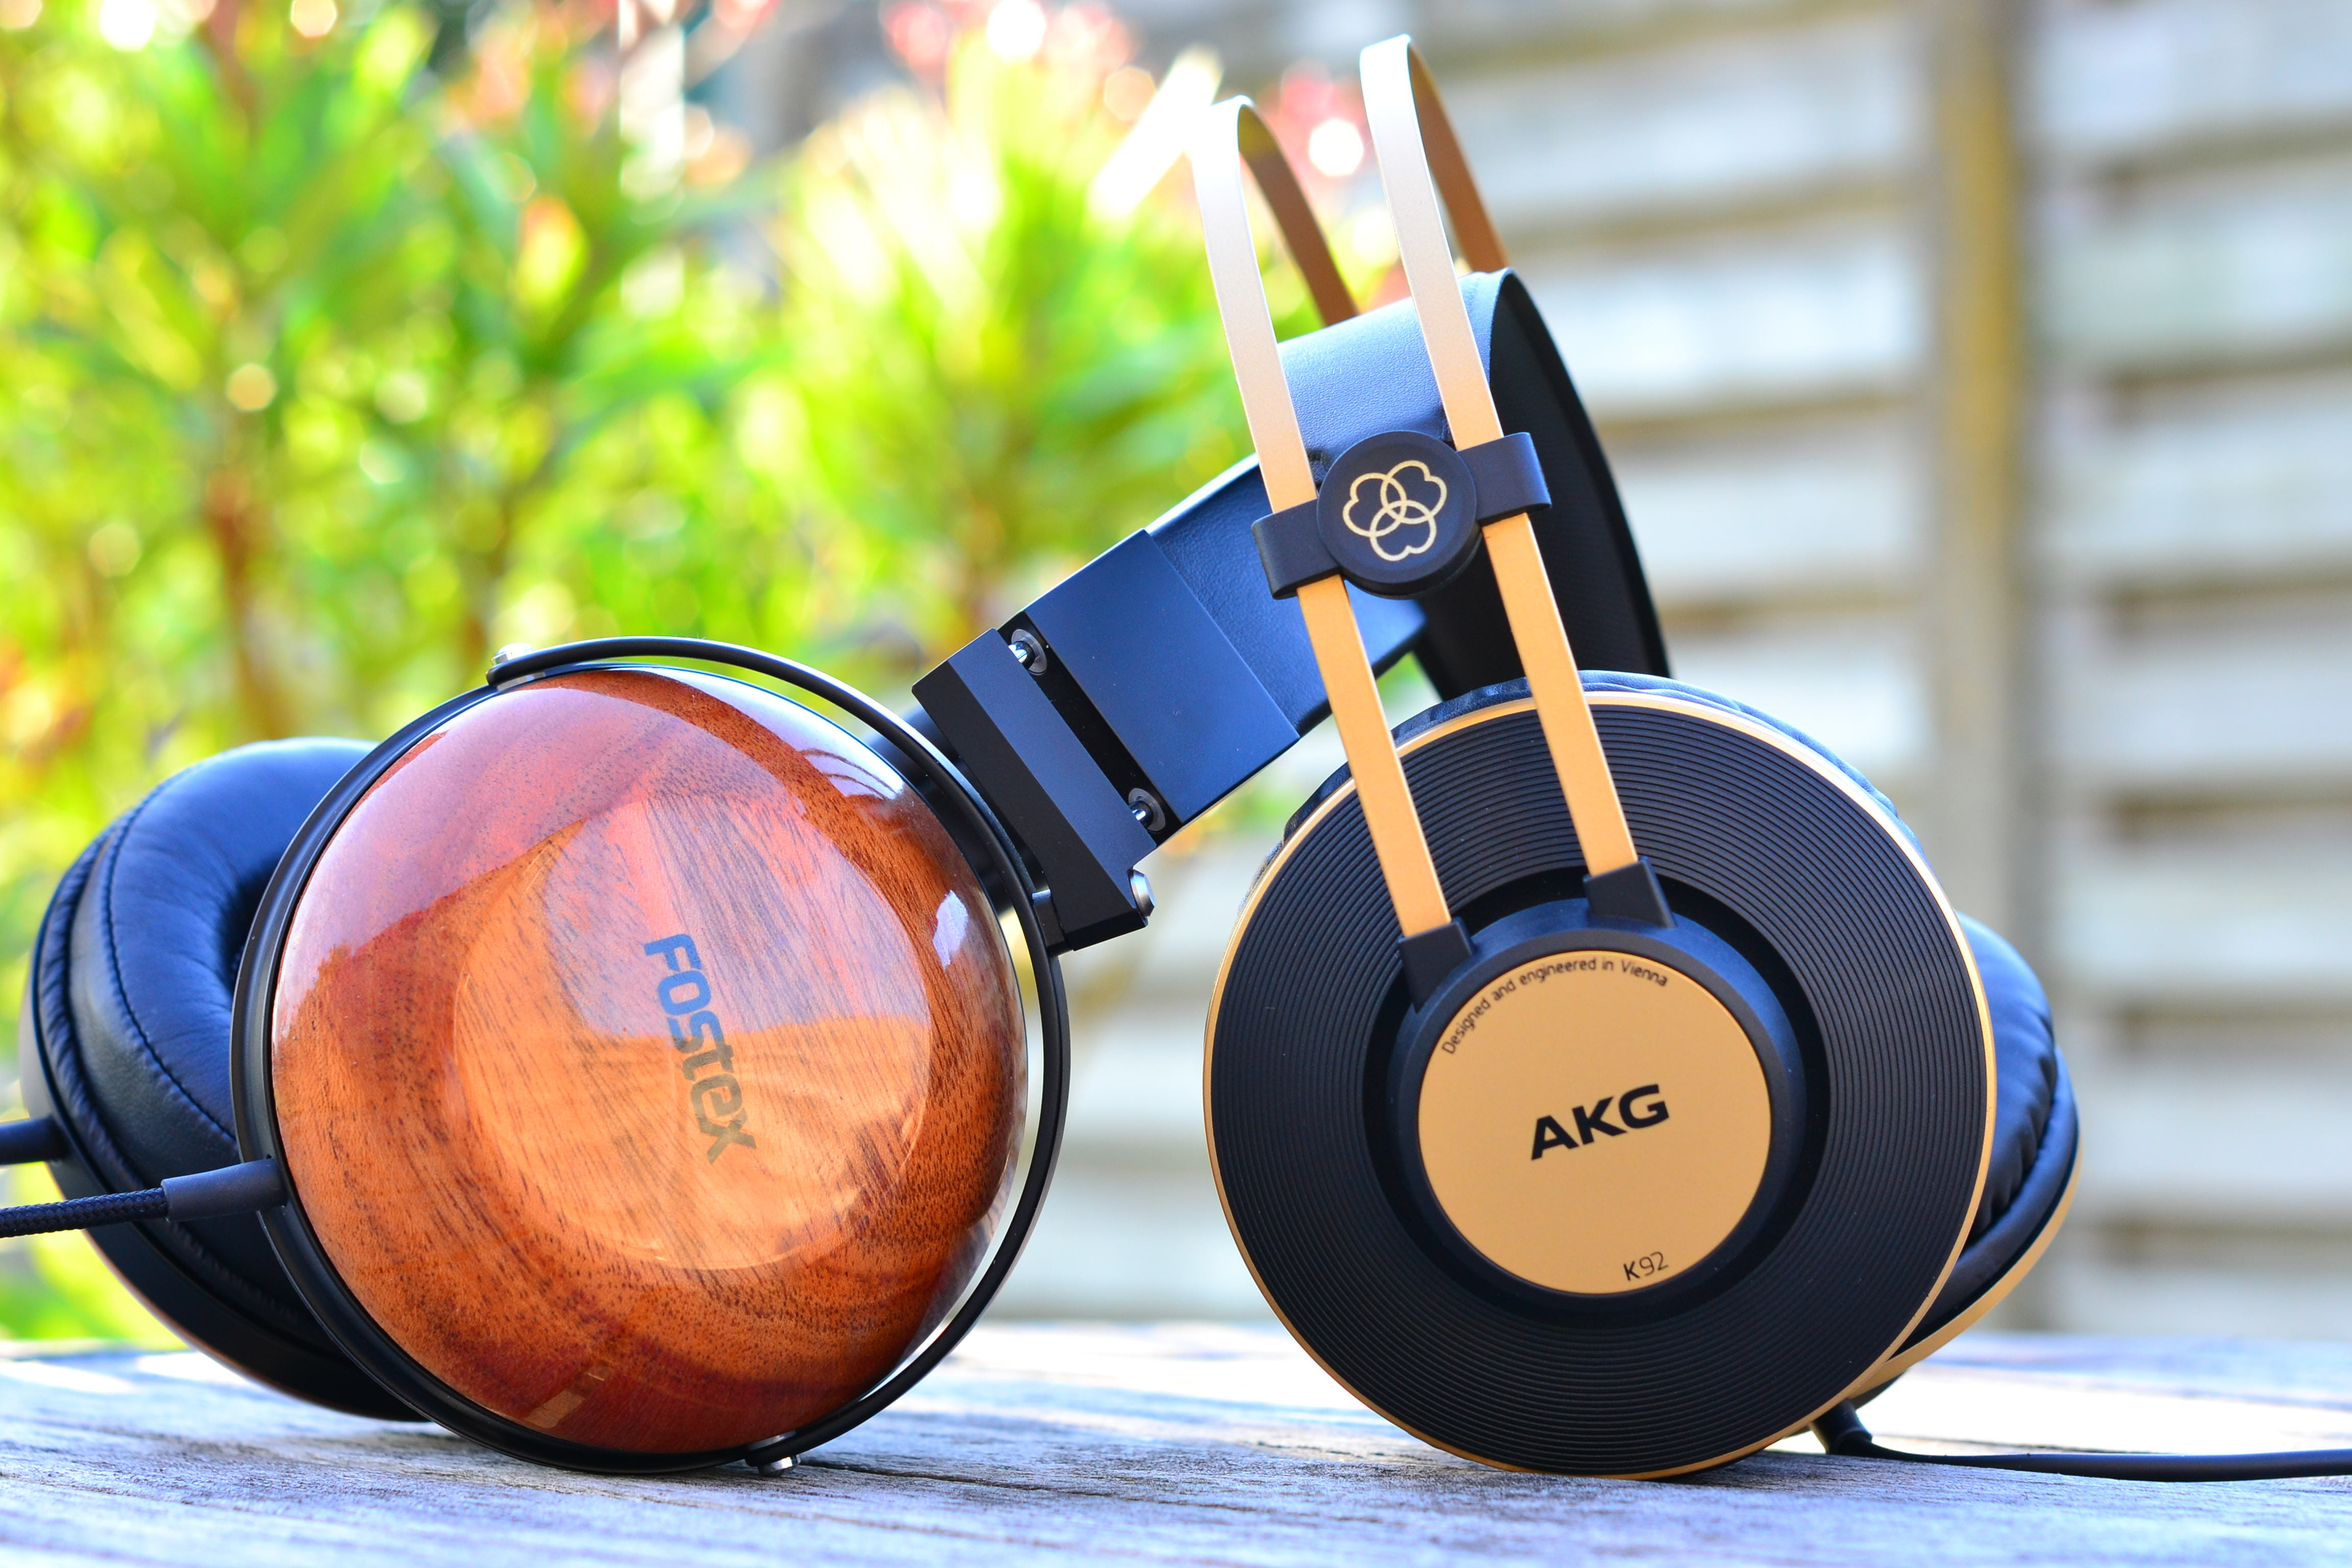 Fostex TH-X00 and AKG K92 Closed Back Headphones